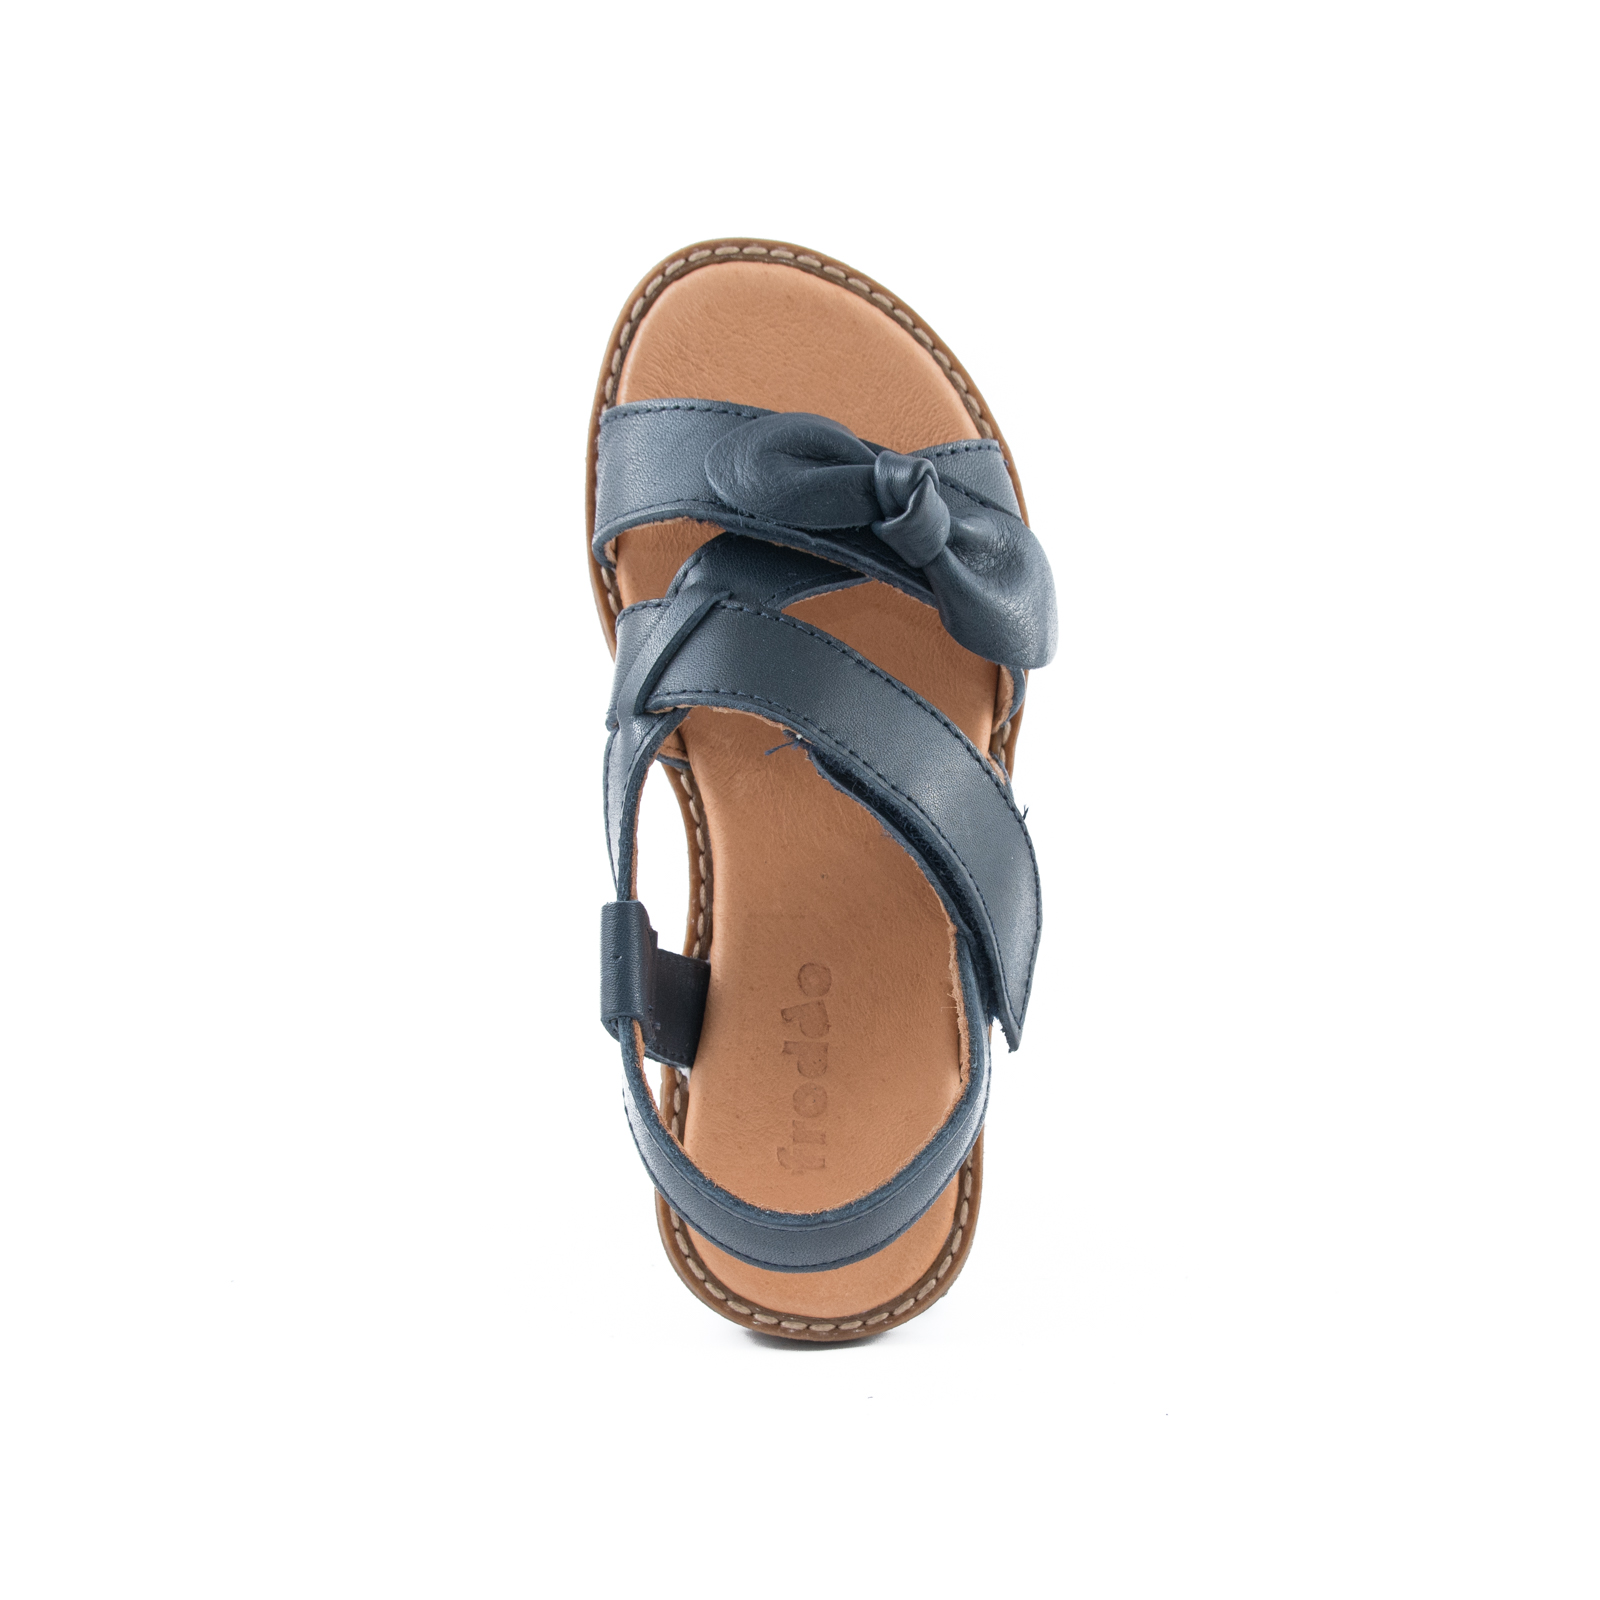 FRODDO Sandals Navy G3150133-5